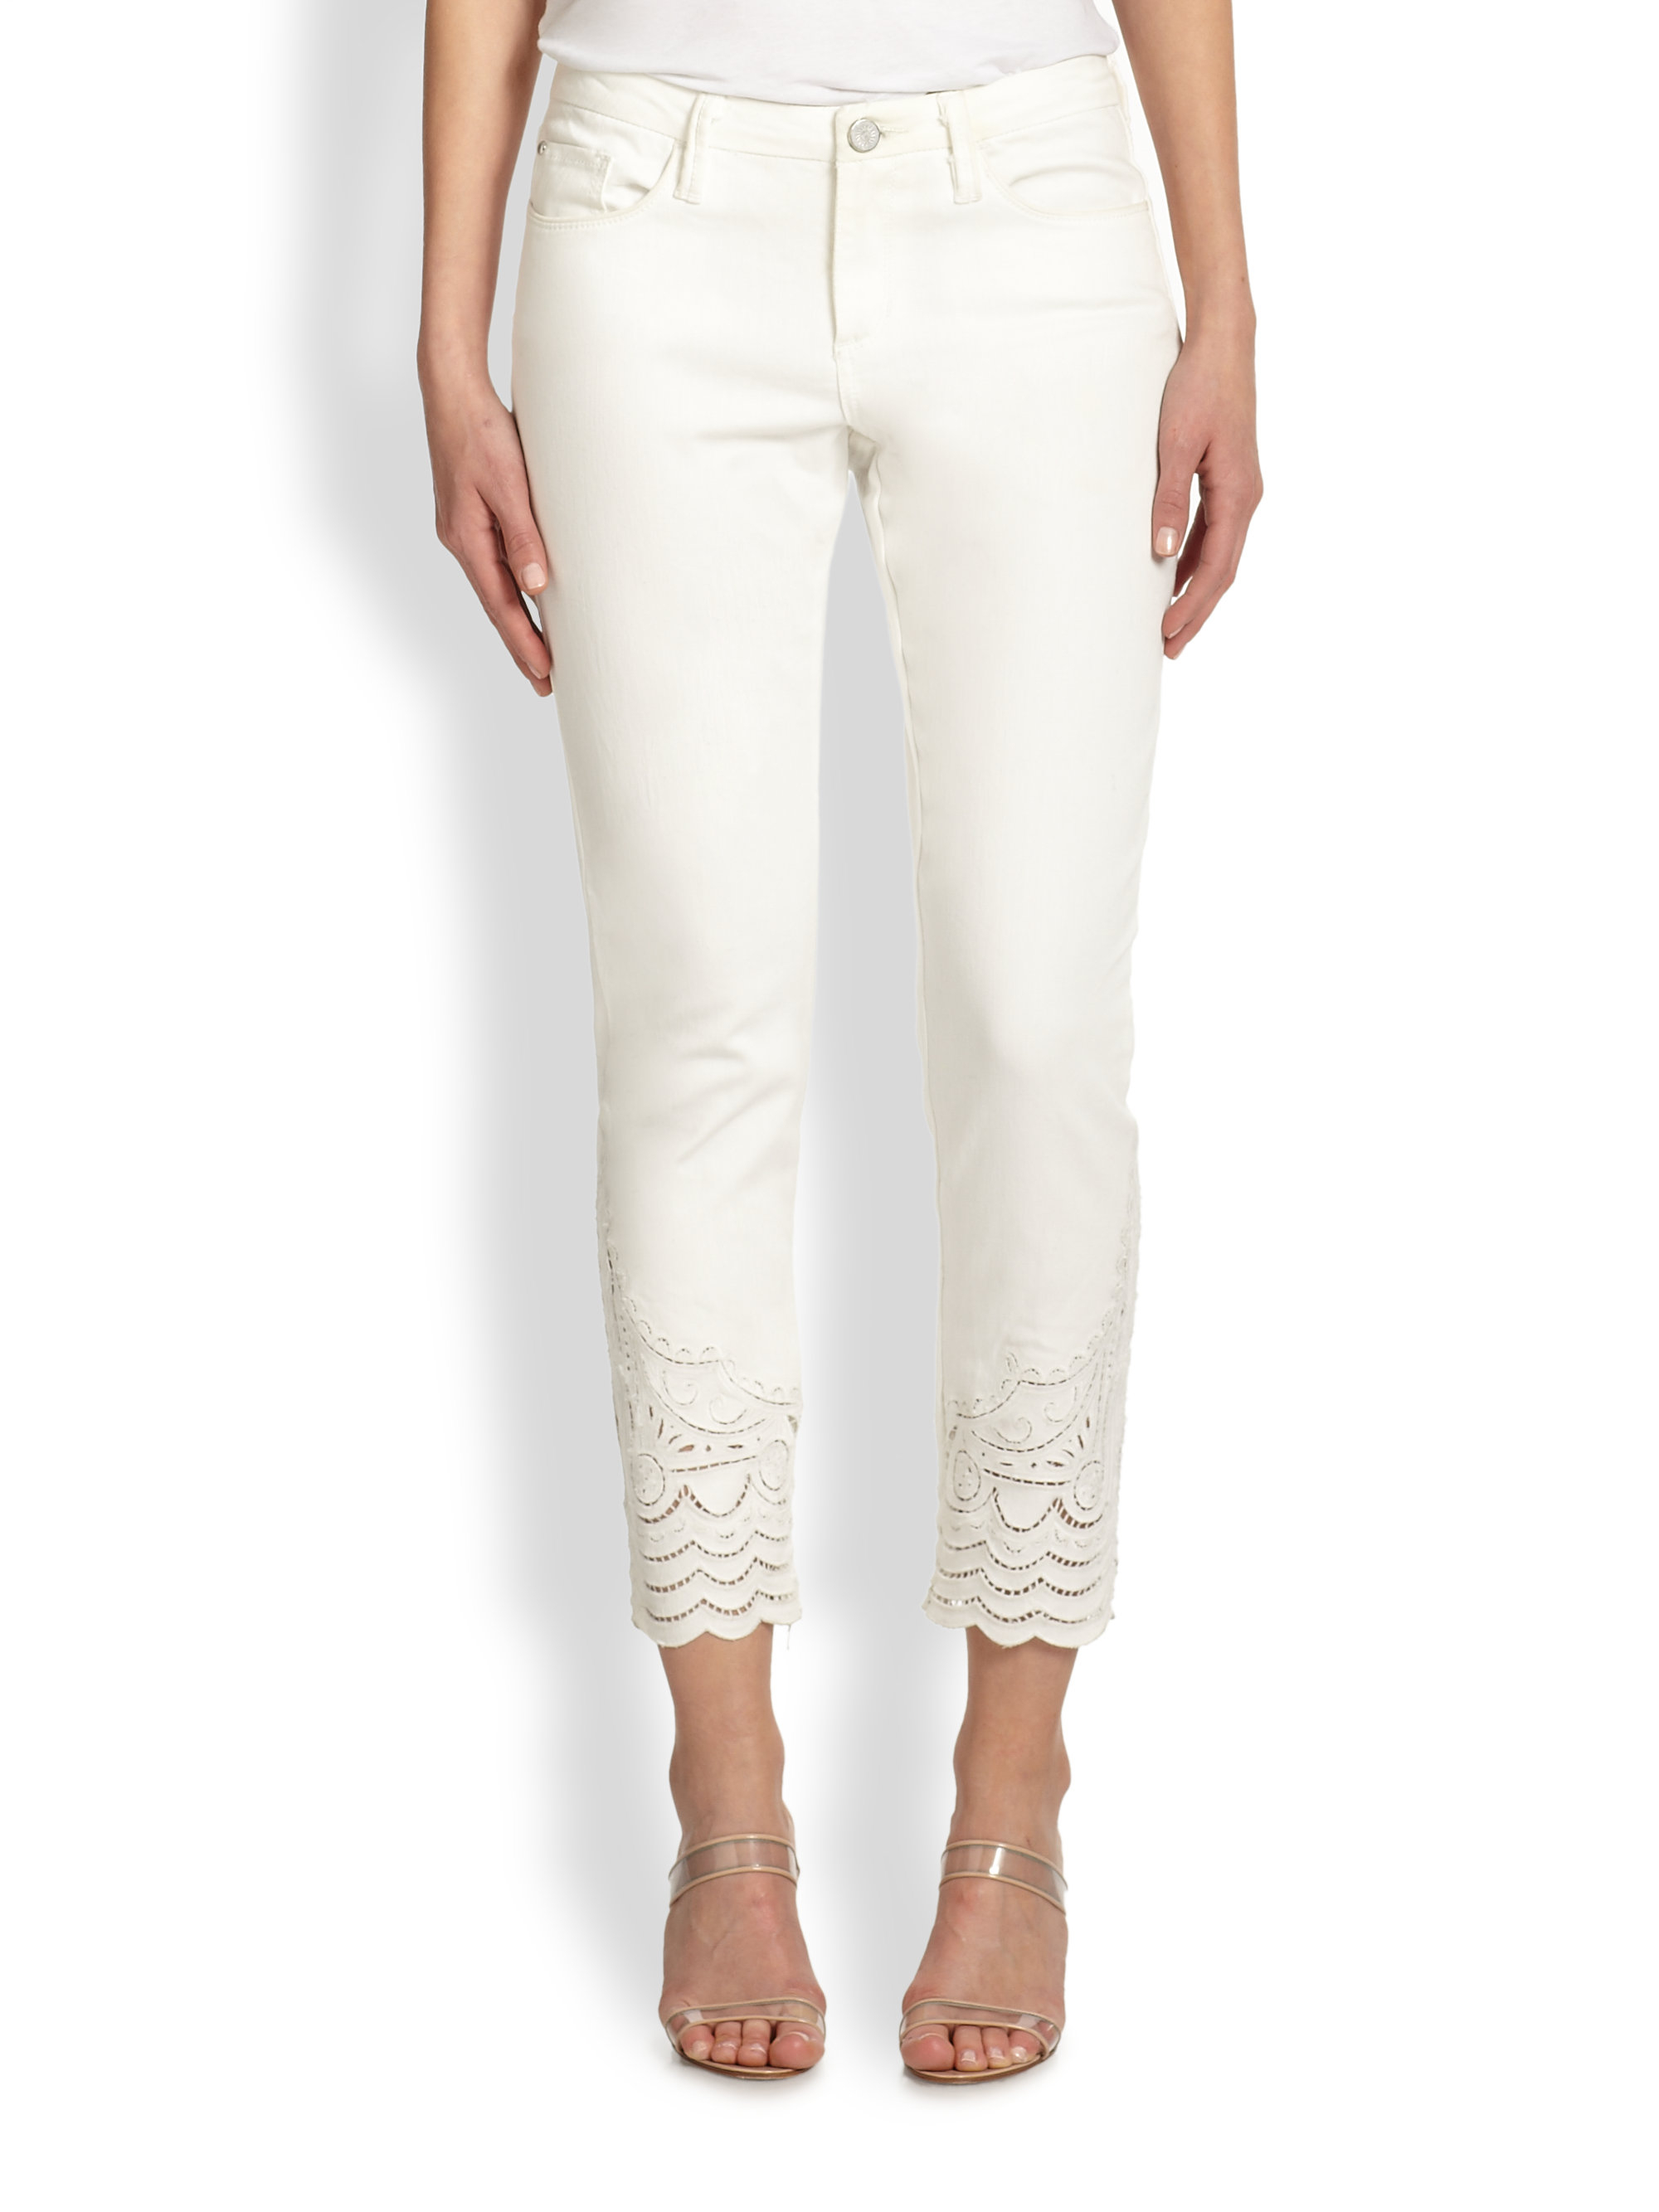 Marchesa voyage Embroidered Capri Pants in White | Lyst